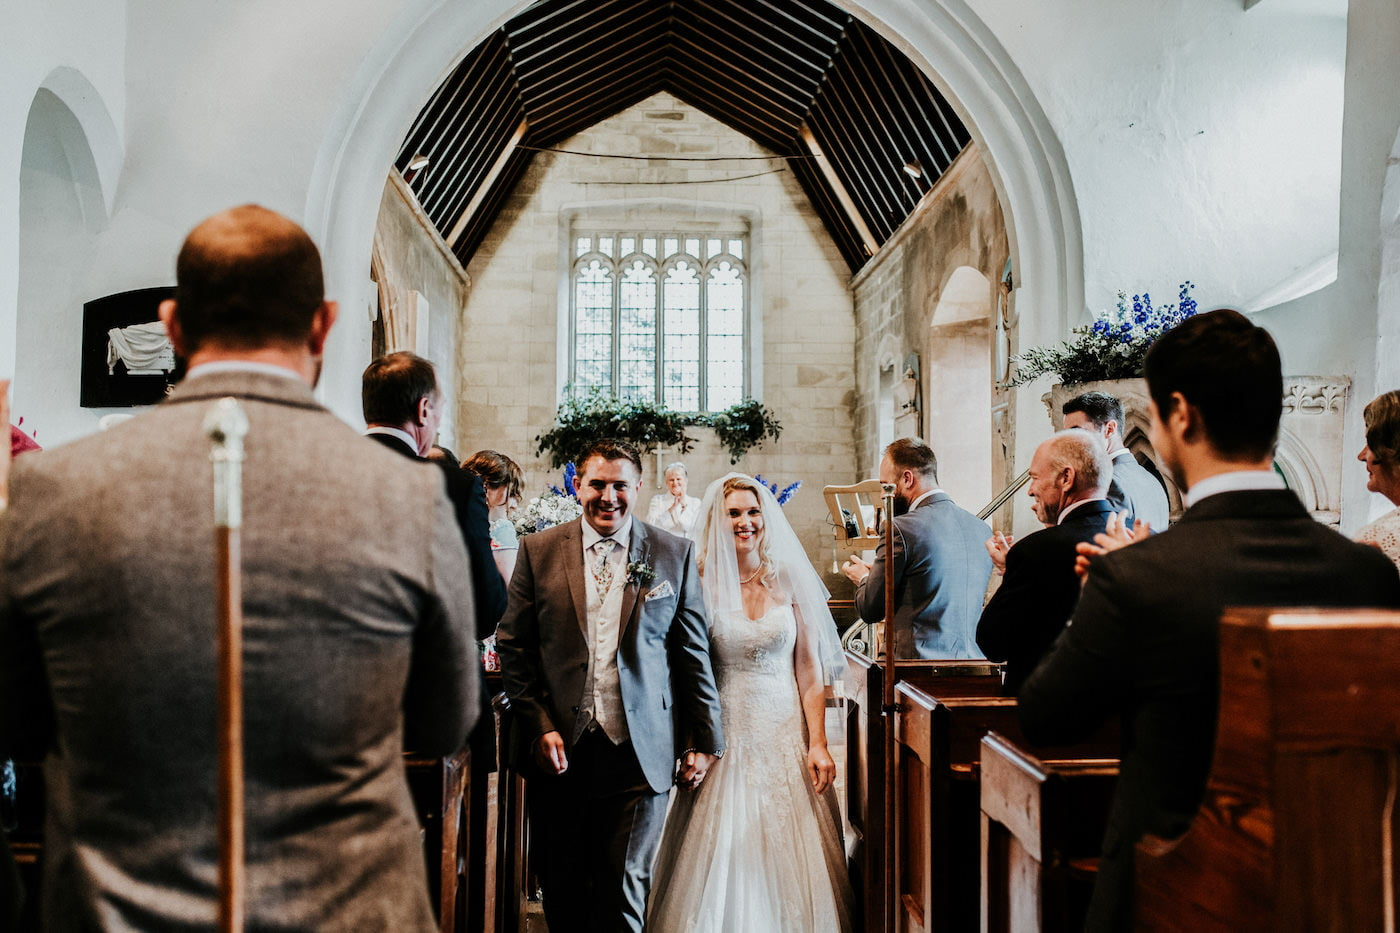 Alex and Jen, Widbrook Grange, Wiltshire 20